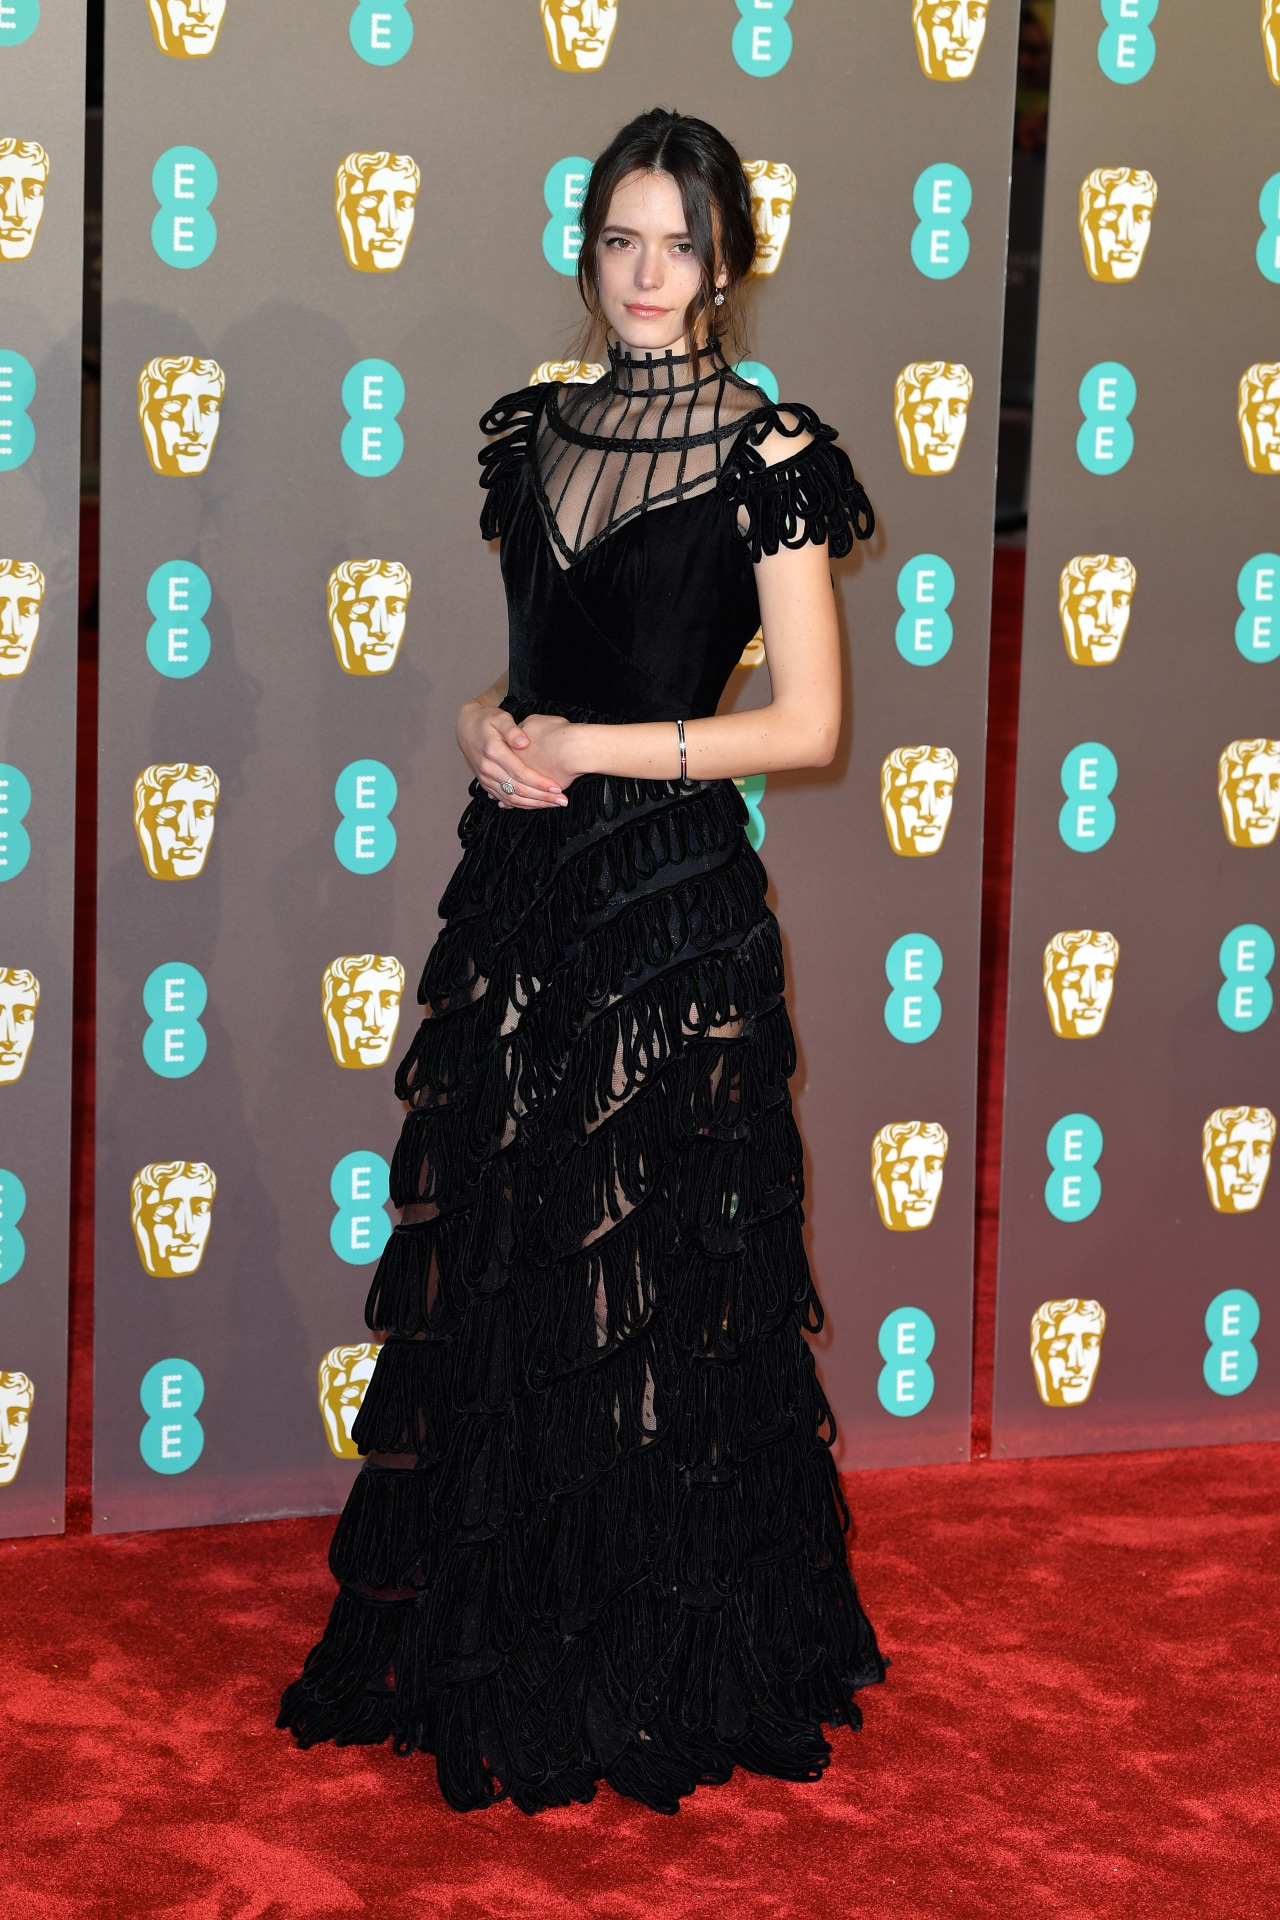 The Vogue team's best dressed from the 2019 BAFTAs